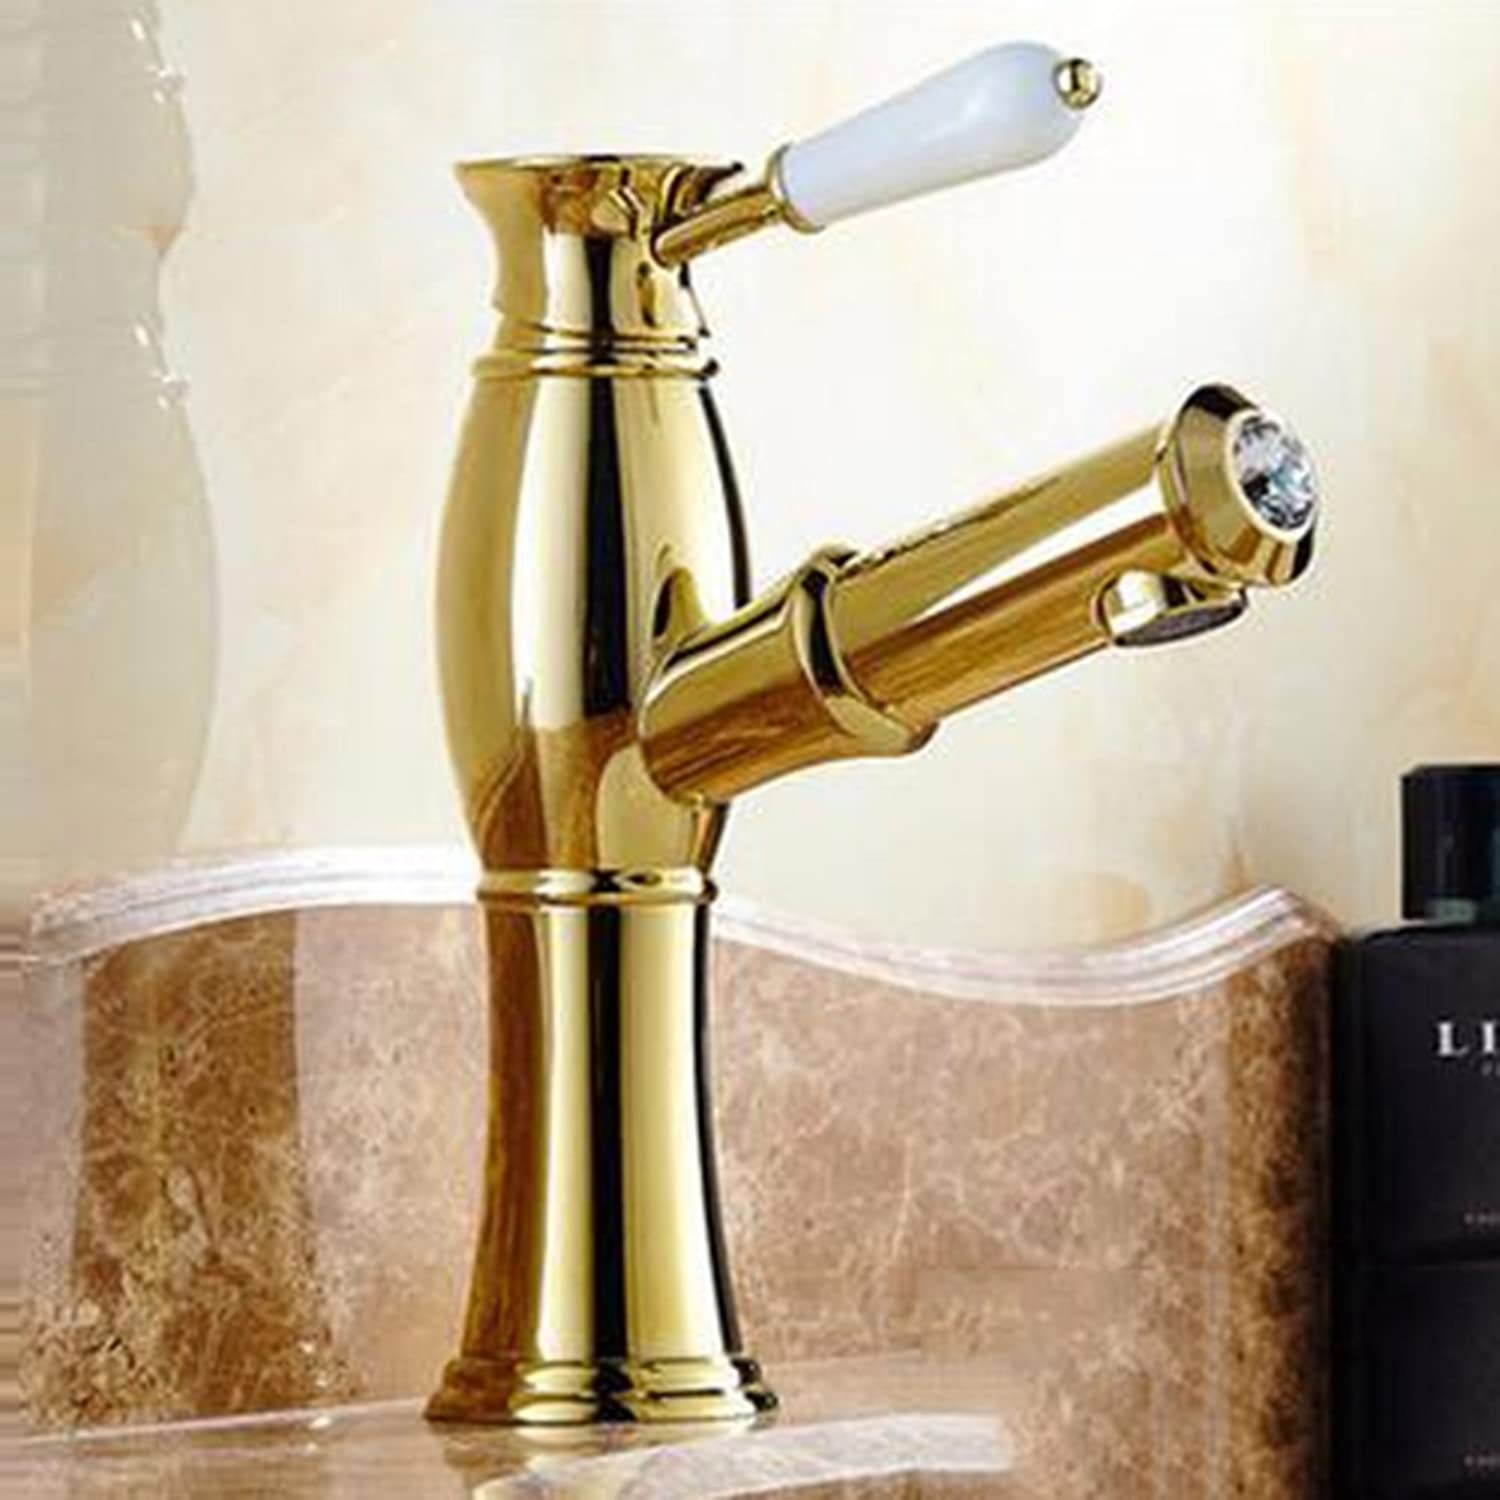 Basin Tap Antique Pull-out Faucet Brass Basin Faucet Retro European Basin Telescopic redating Faucet Suitable For Any Place ( color   2 , Design   A )